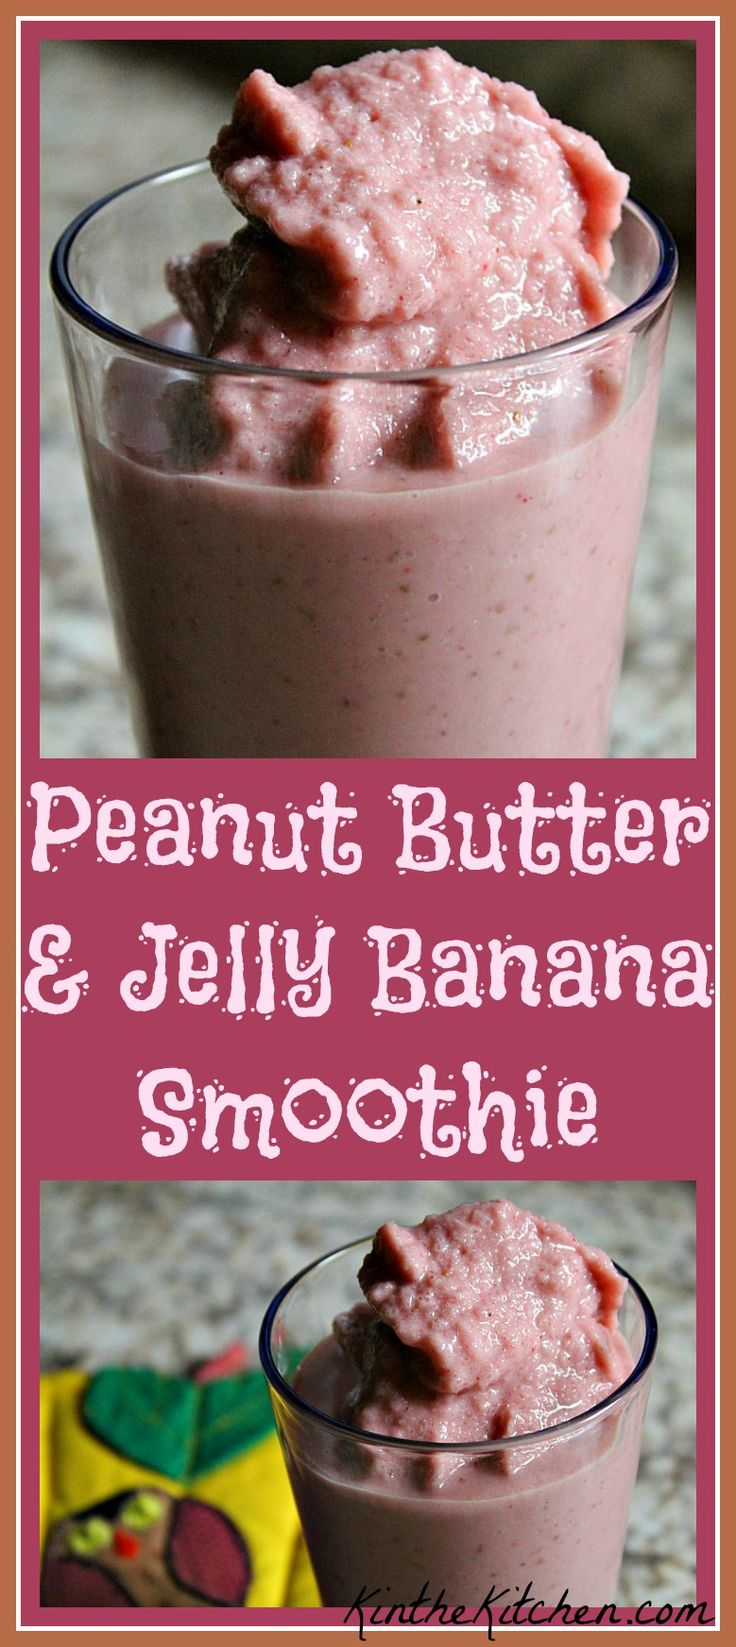 Reminiscent of a classic PB & J, this smoothie is naturally sweetened with honey and bananas, and contains strawberries and peanut butter for lots of flavor.